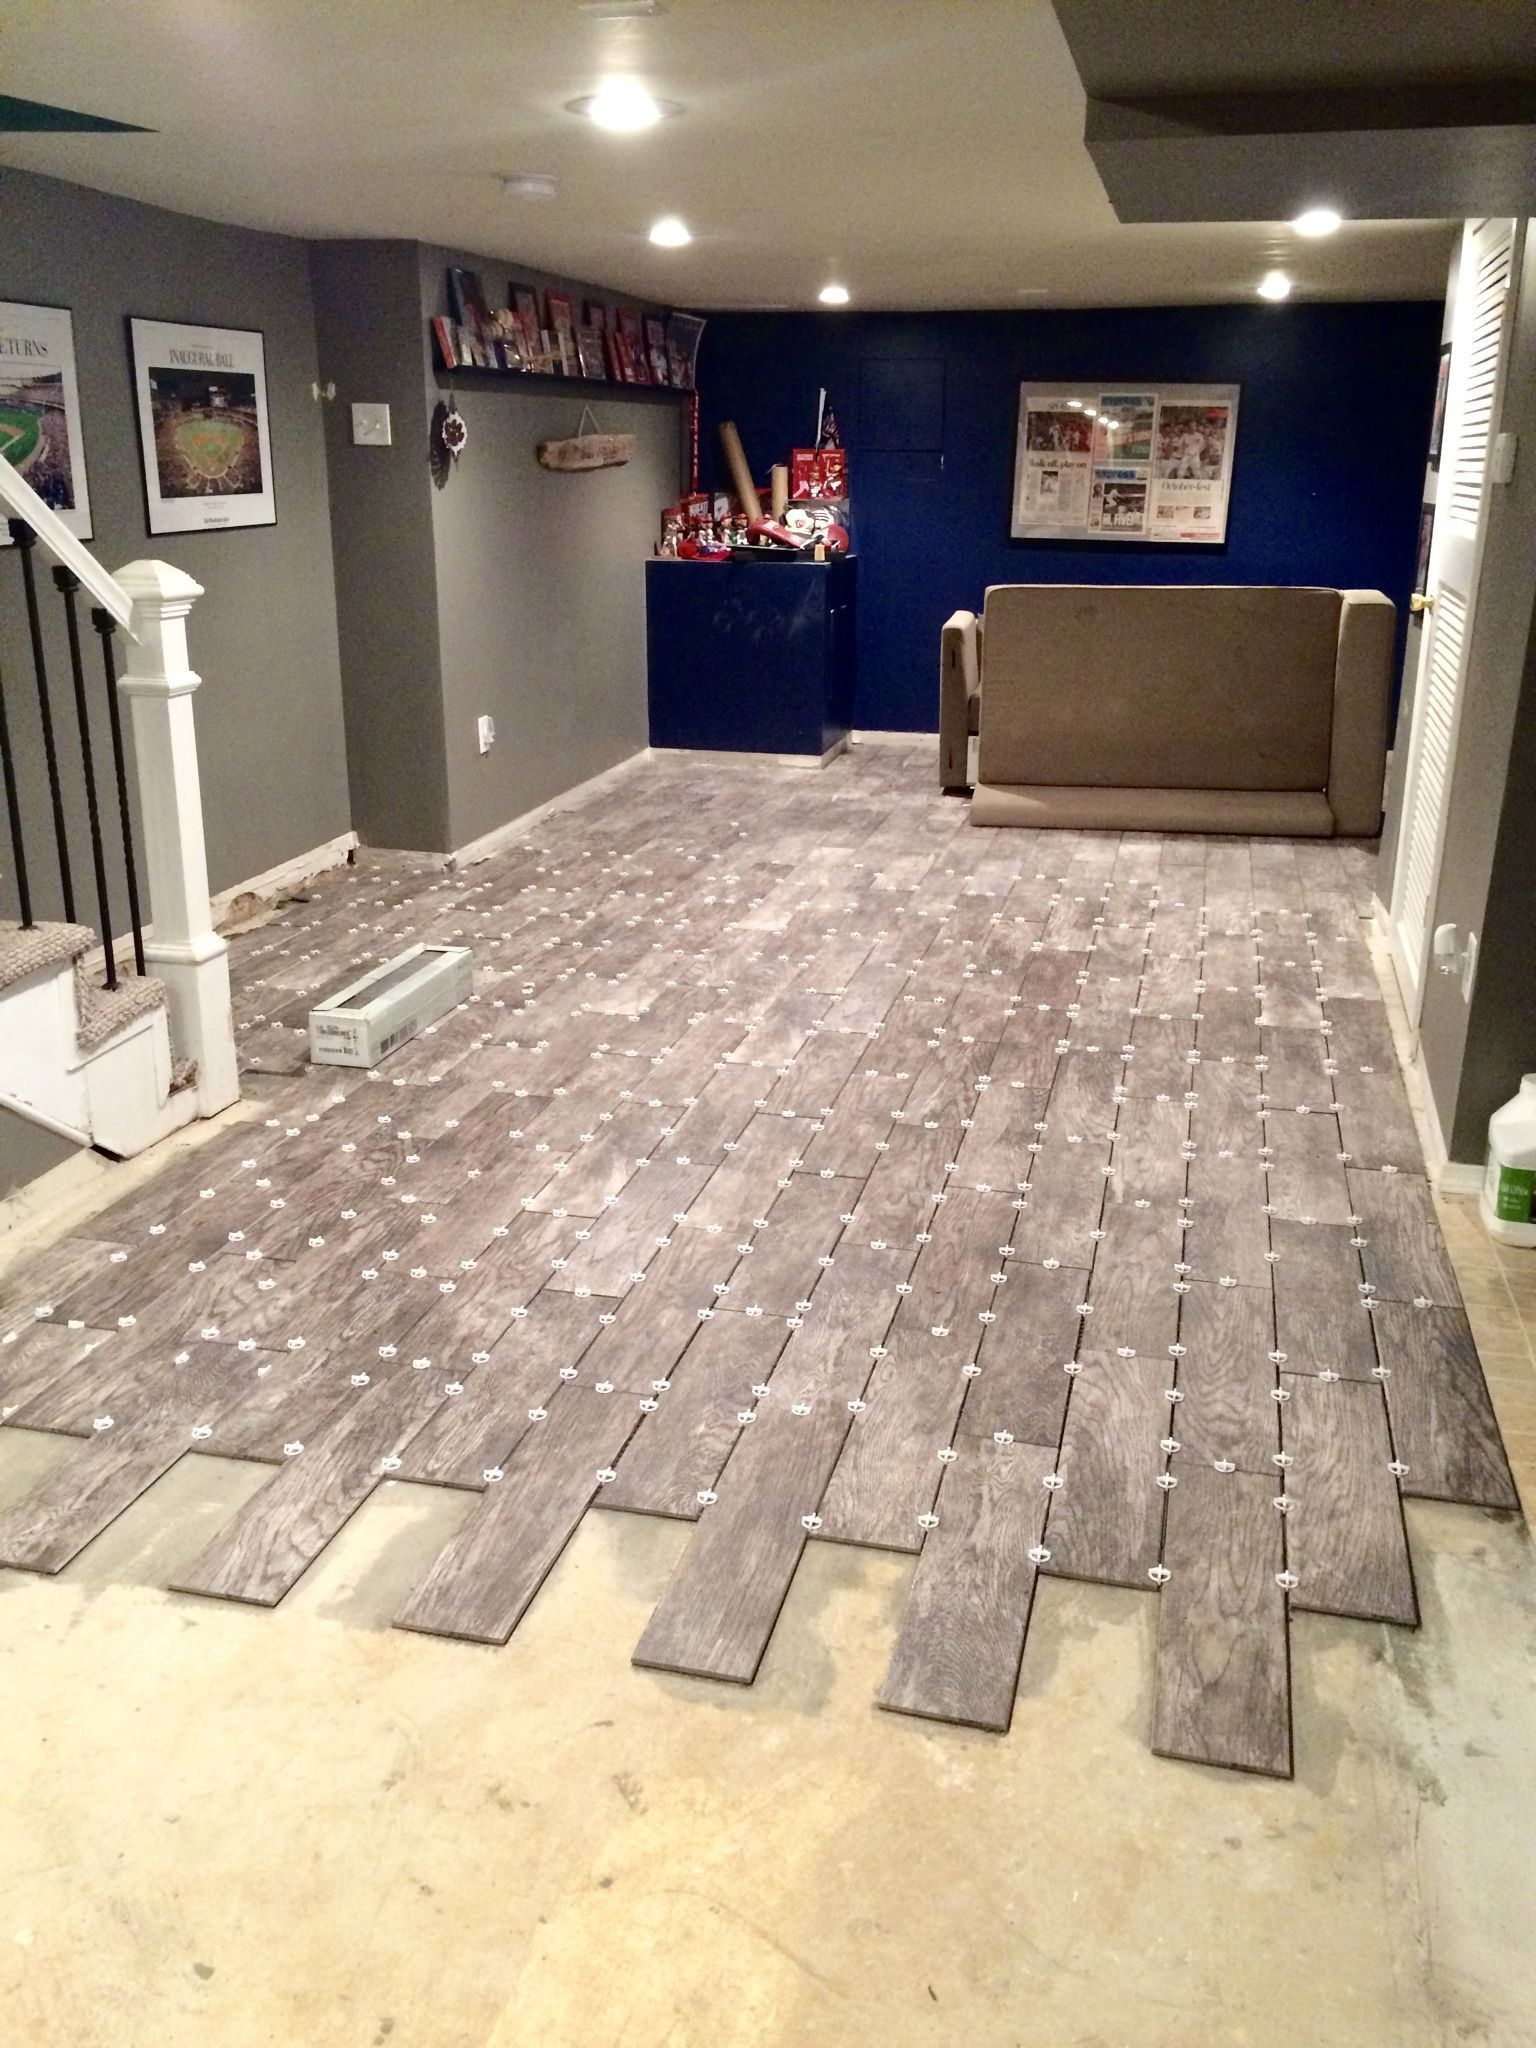 38 Fancy Basement Tile Floor Ideas Sketch Basement Flooring Waterproofing Basement Finishing Basement